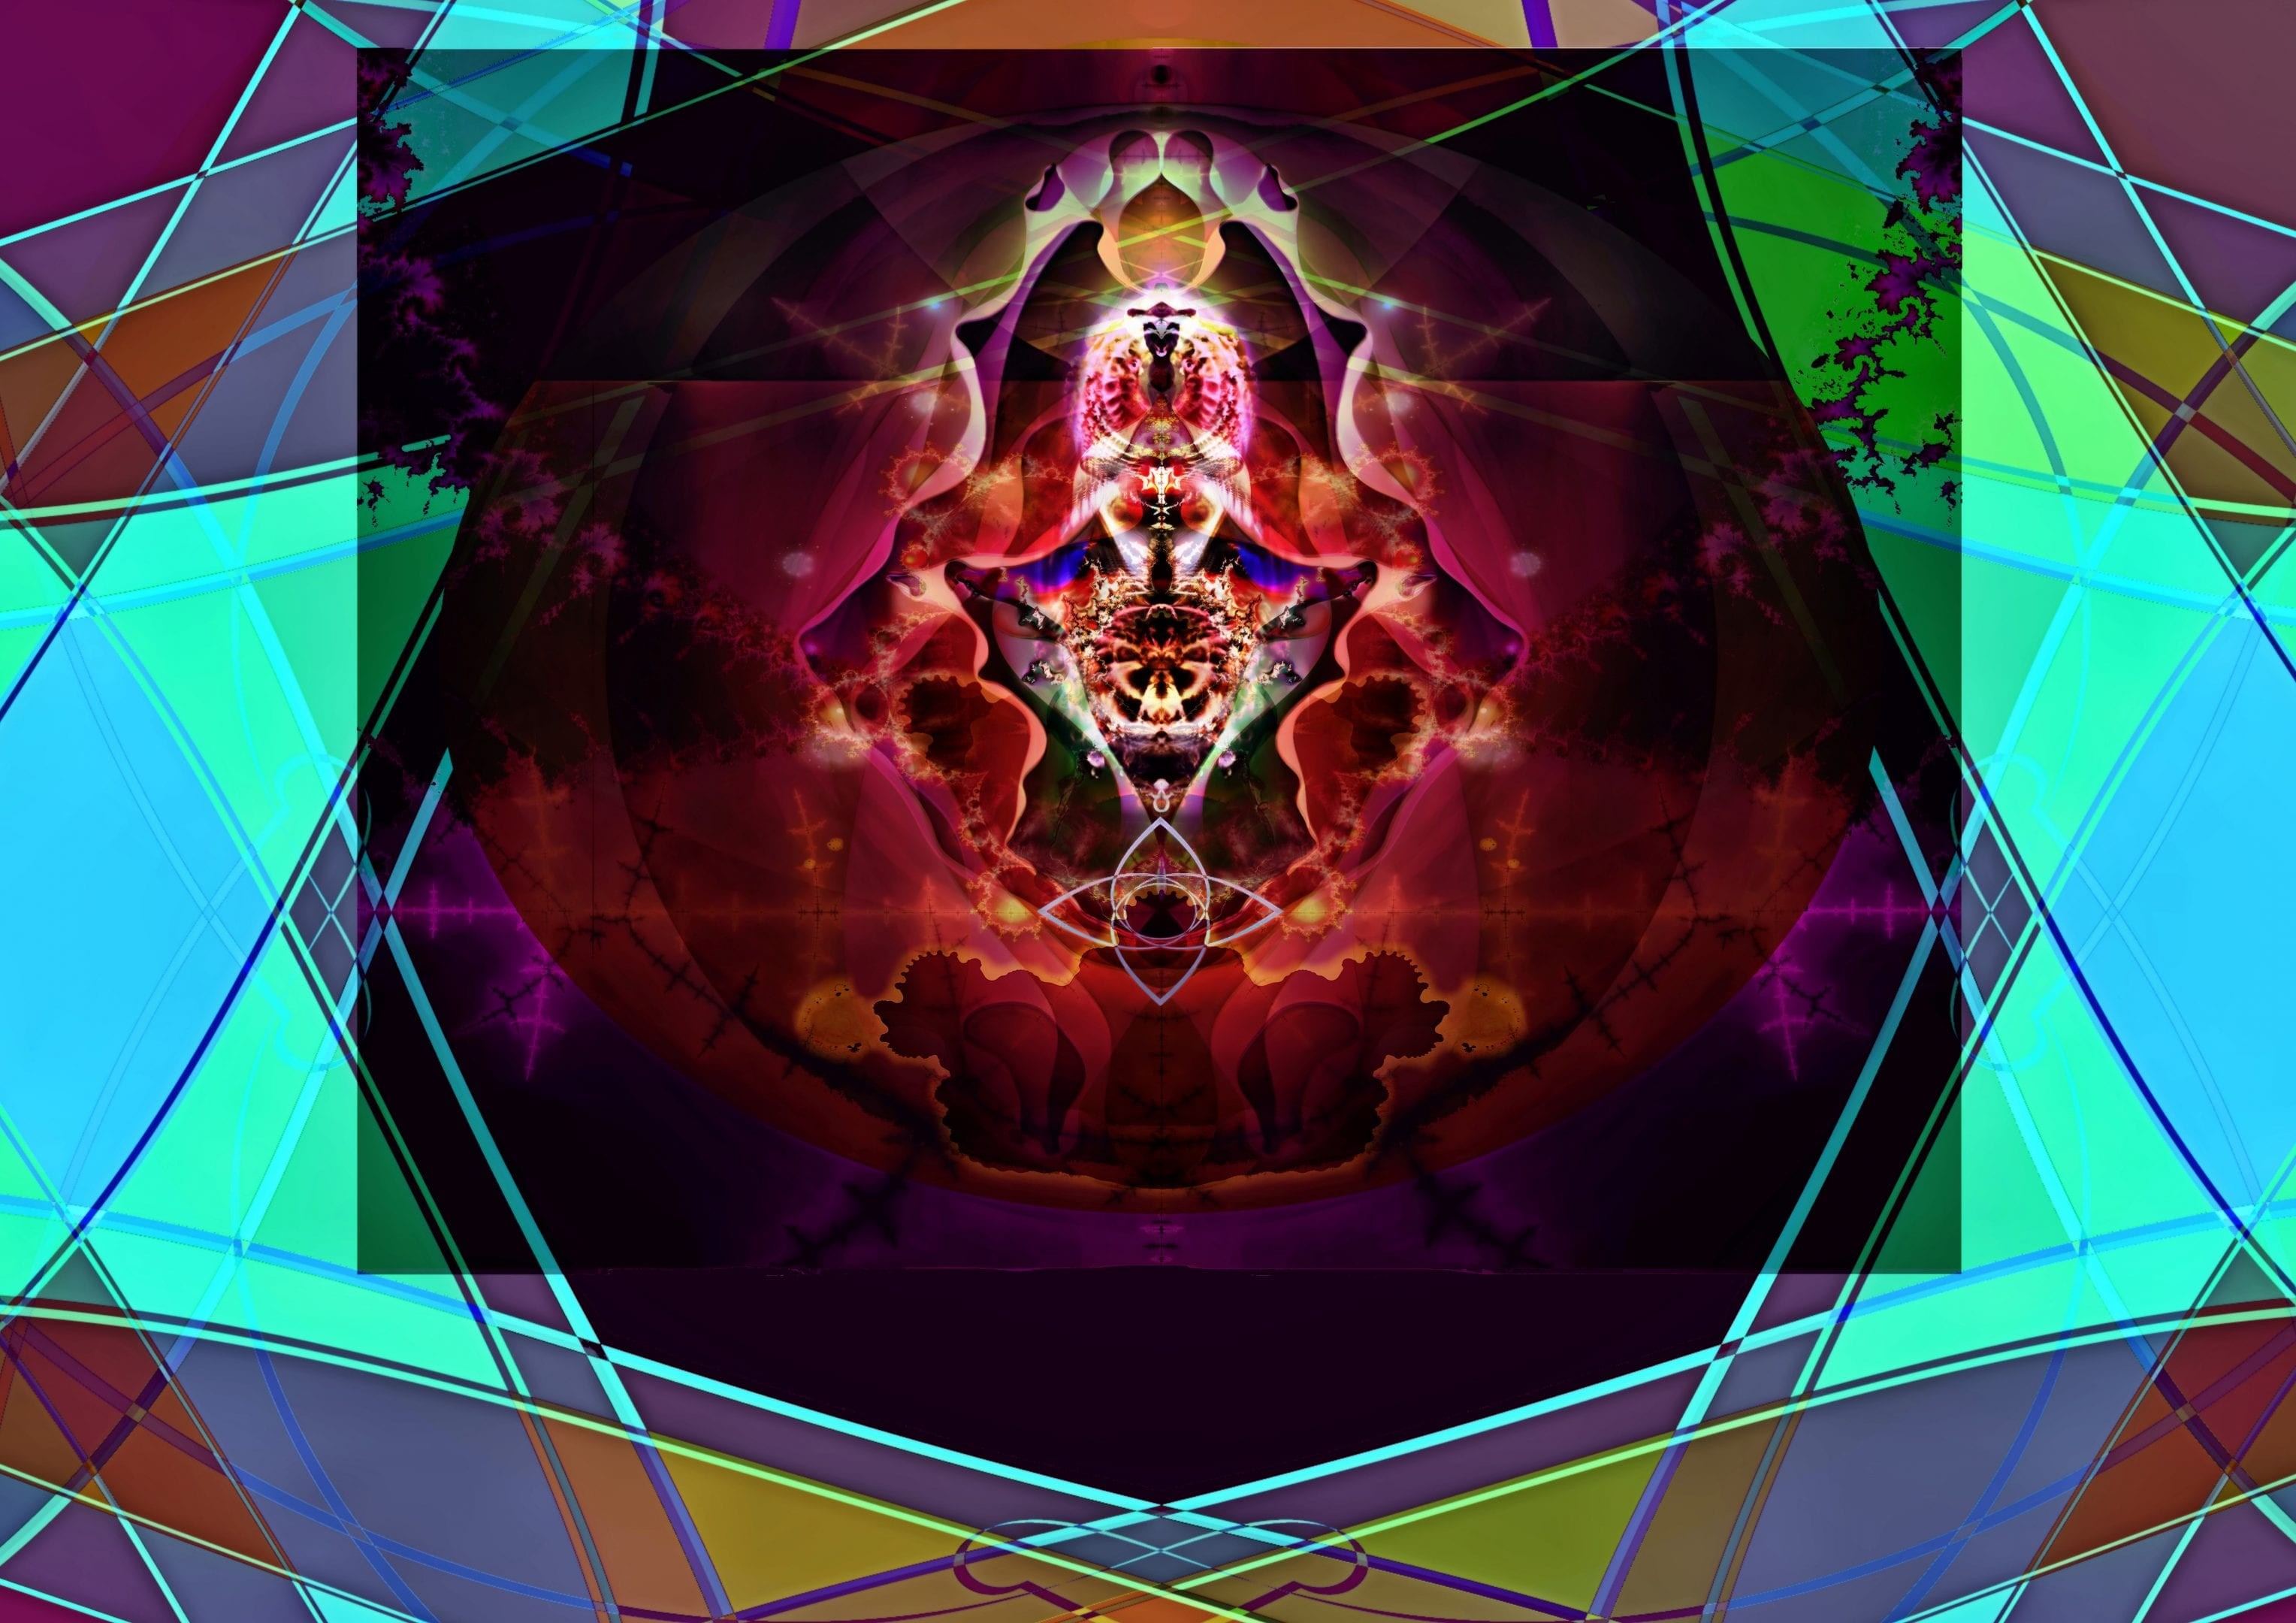 Fractal image of throne room with altar at center